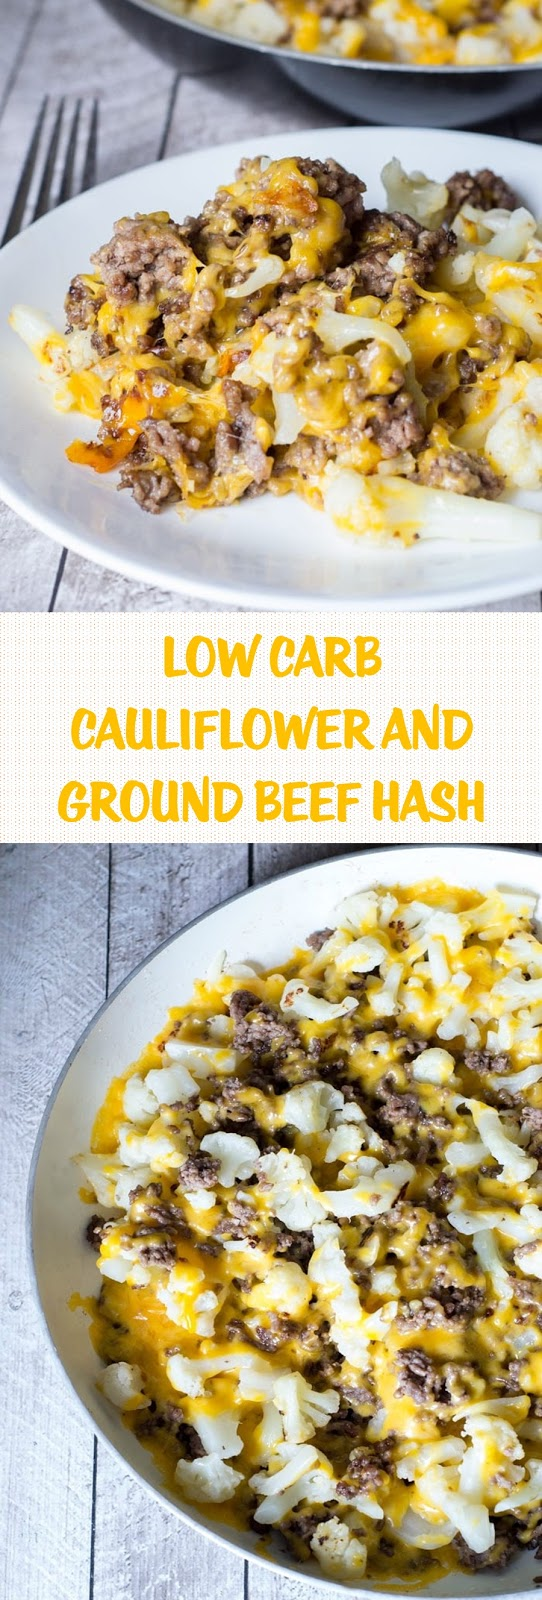 LOW CARB CAULIFLOWER AND GROUND BEEF HASH